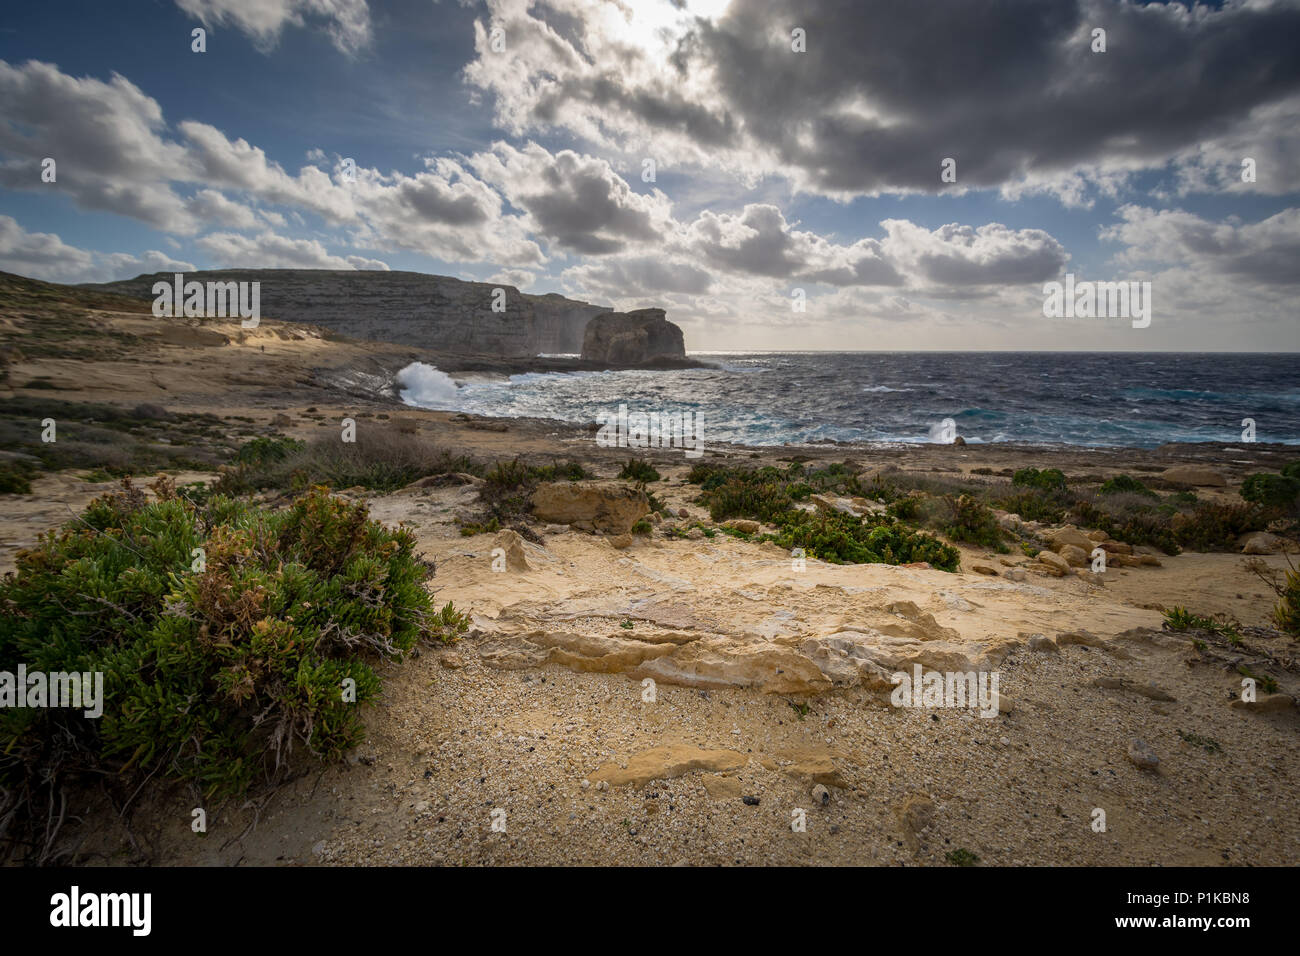 Fungus Rock. Dwejra Bay at the west coast of the Maltese Island of Gozo. Winter, windy day. - Stock Image